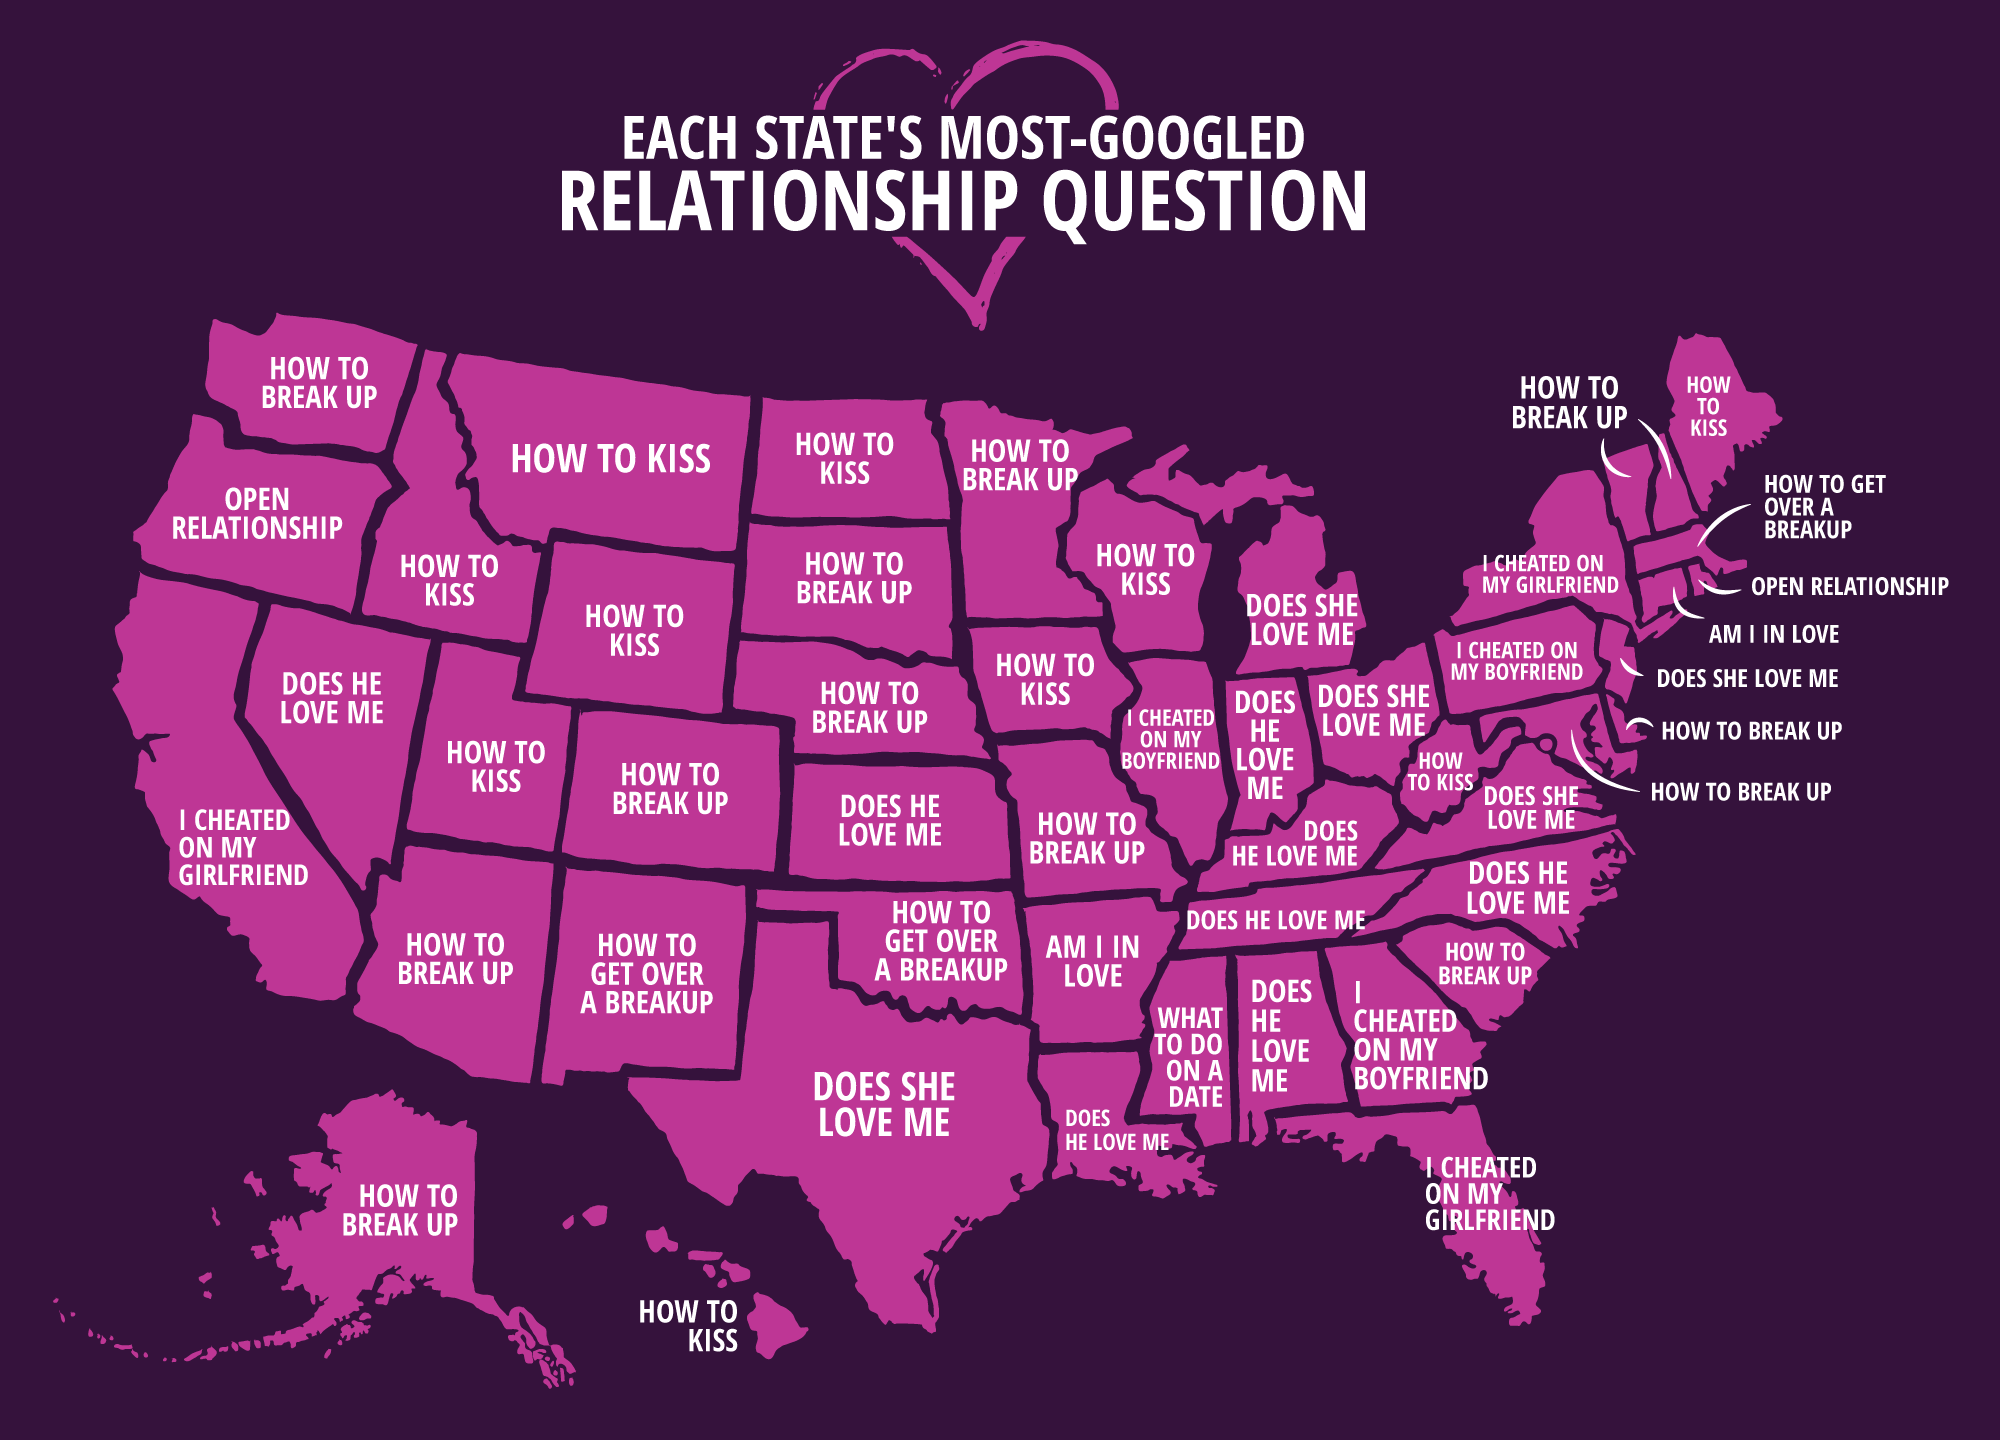 I cheated on my boyfriend' is Illinois' most-Googled relationship search